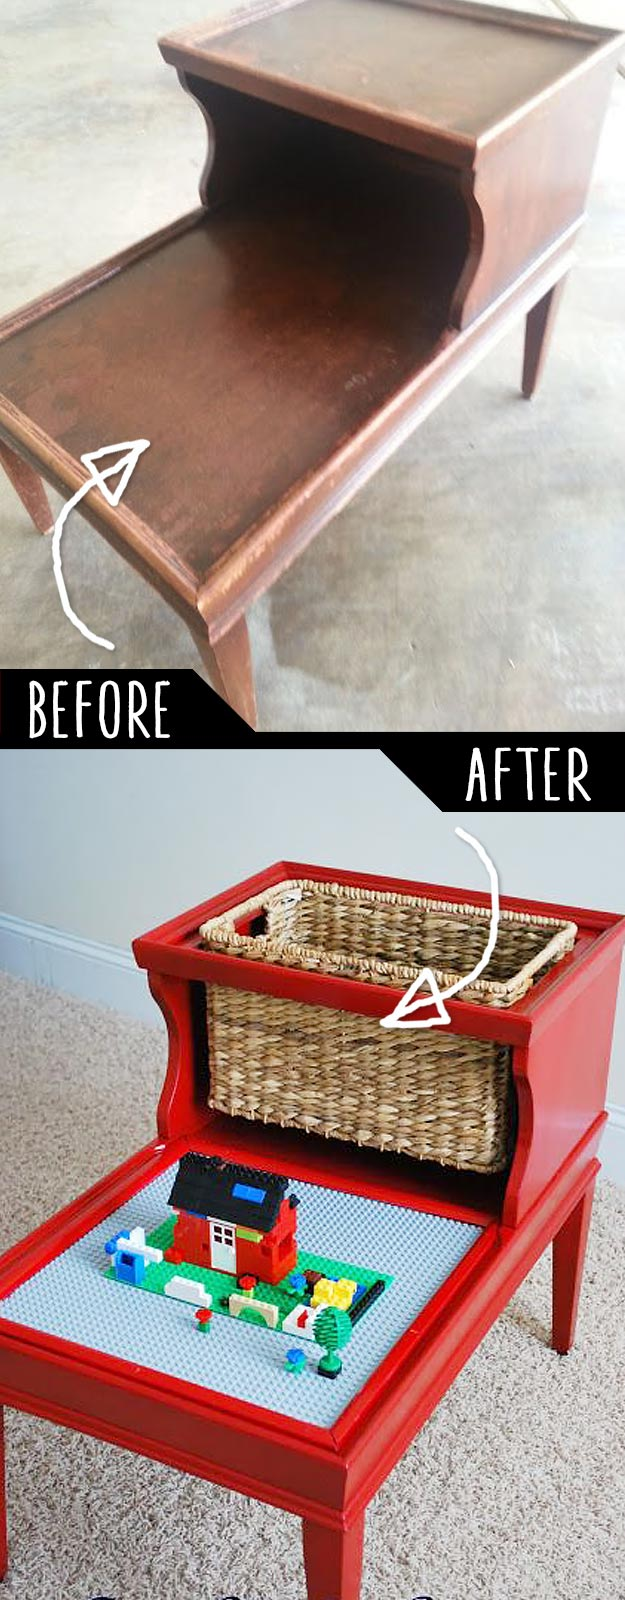 DIY Furniture Hacks   An Old Table into Kids Lego Table   Cool Ideas for Creative Do It Yourself Furniture Made From Things You Might Not Expect #diy